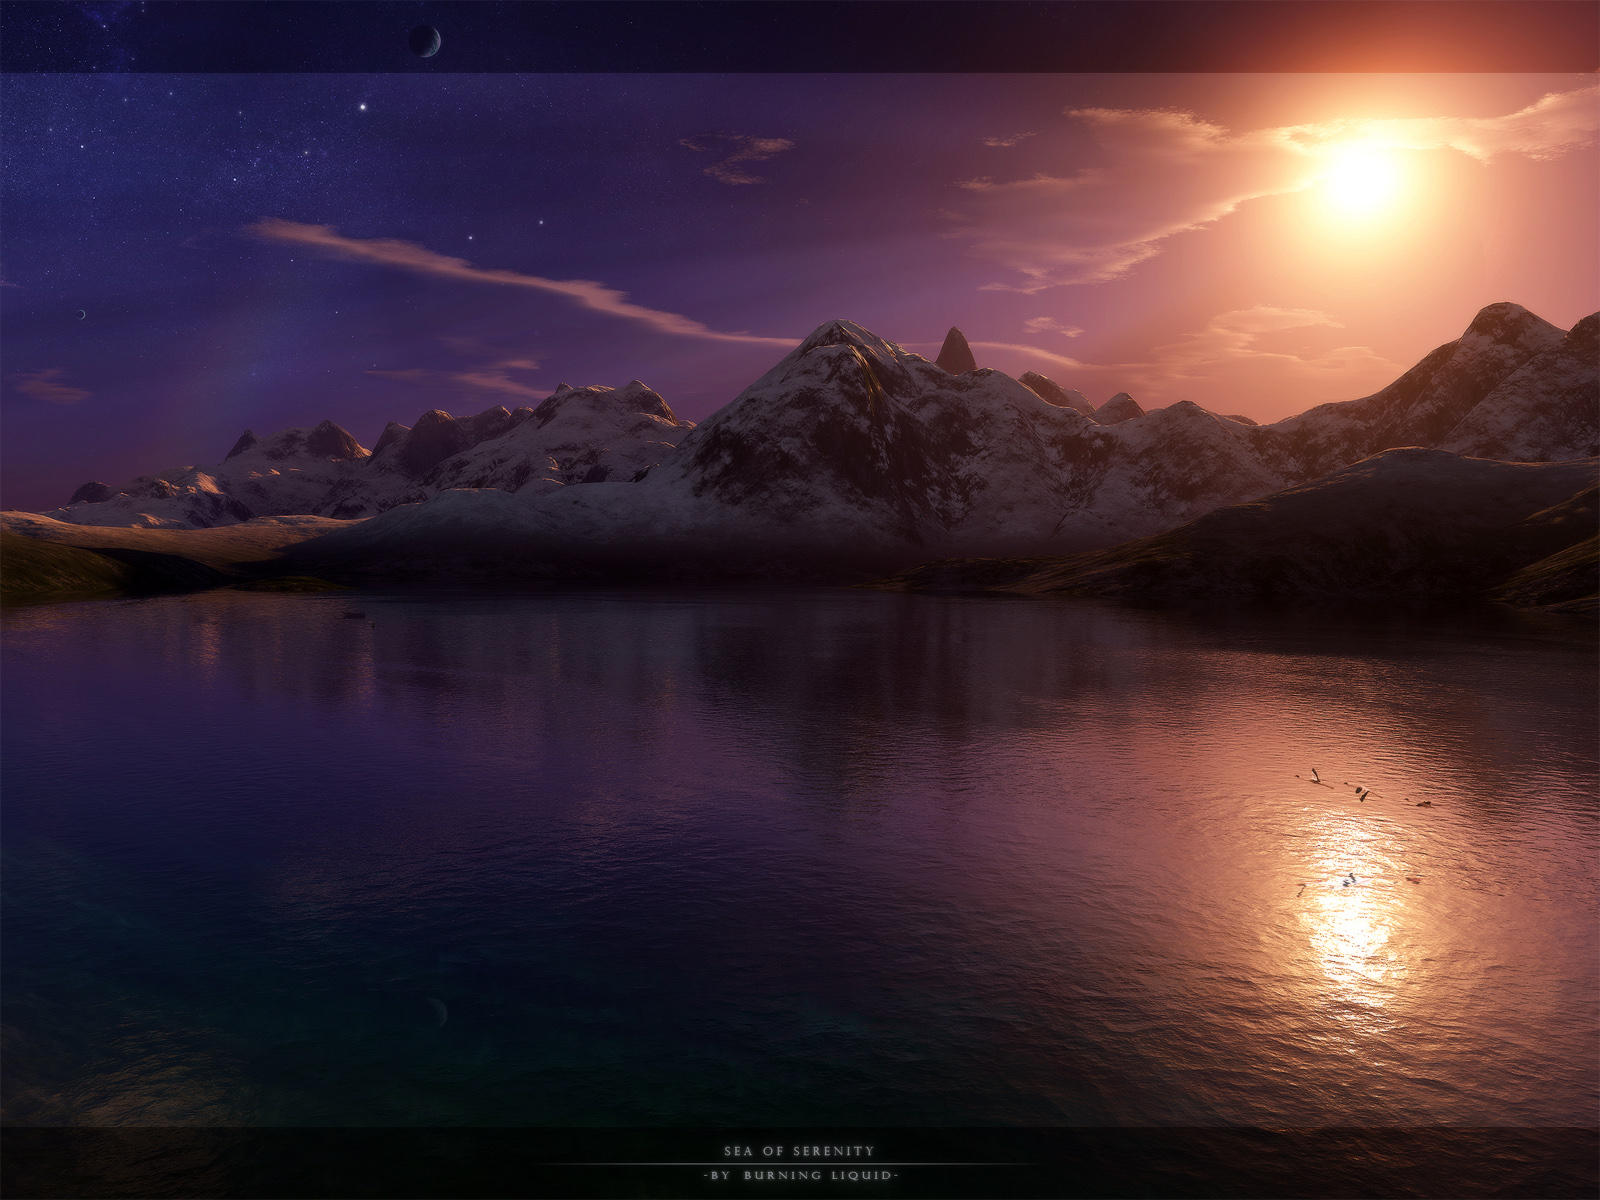 Sea_of_Serenity_by_Burning_Liquid.jpg